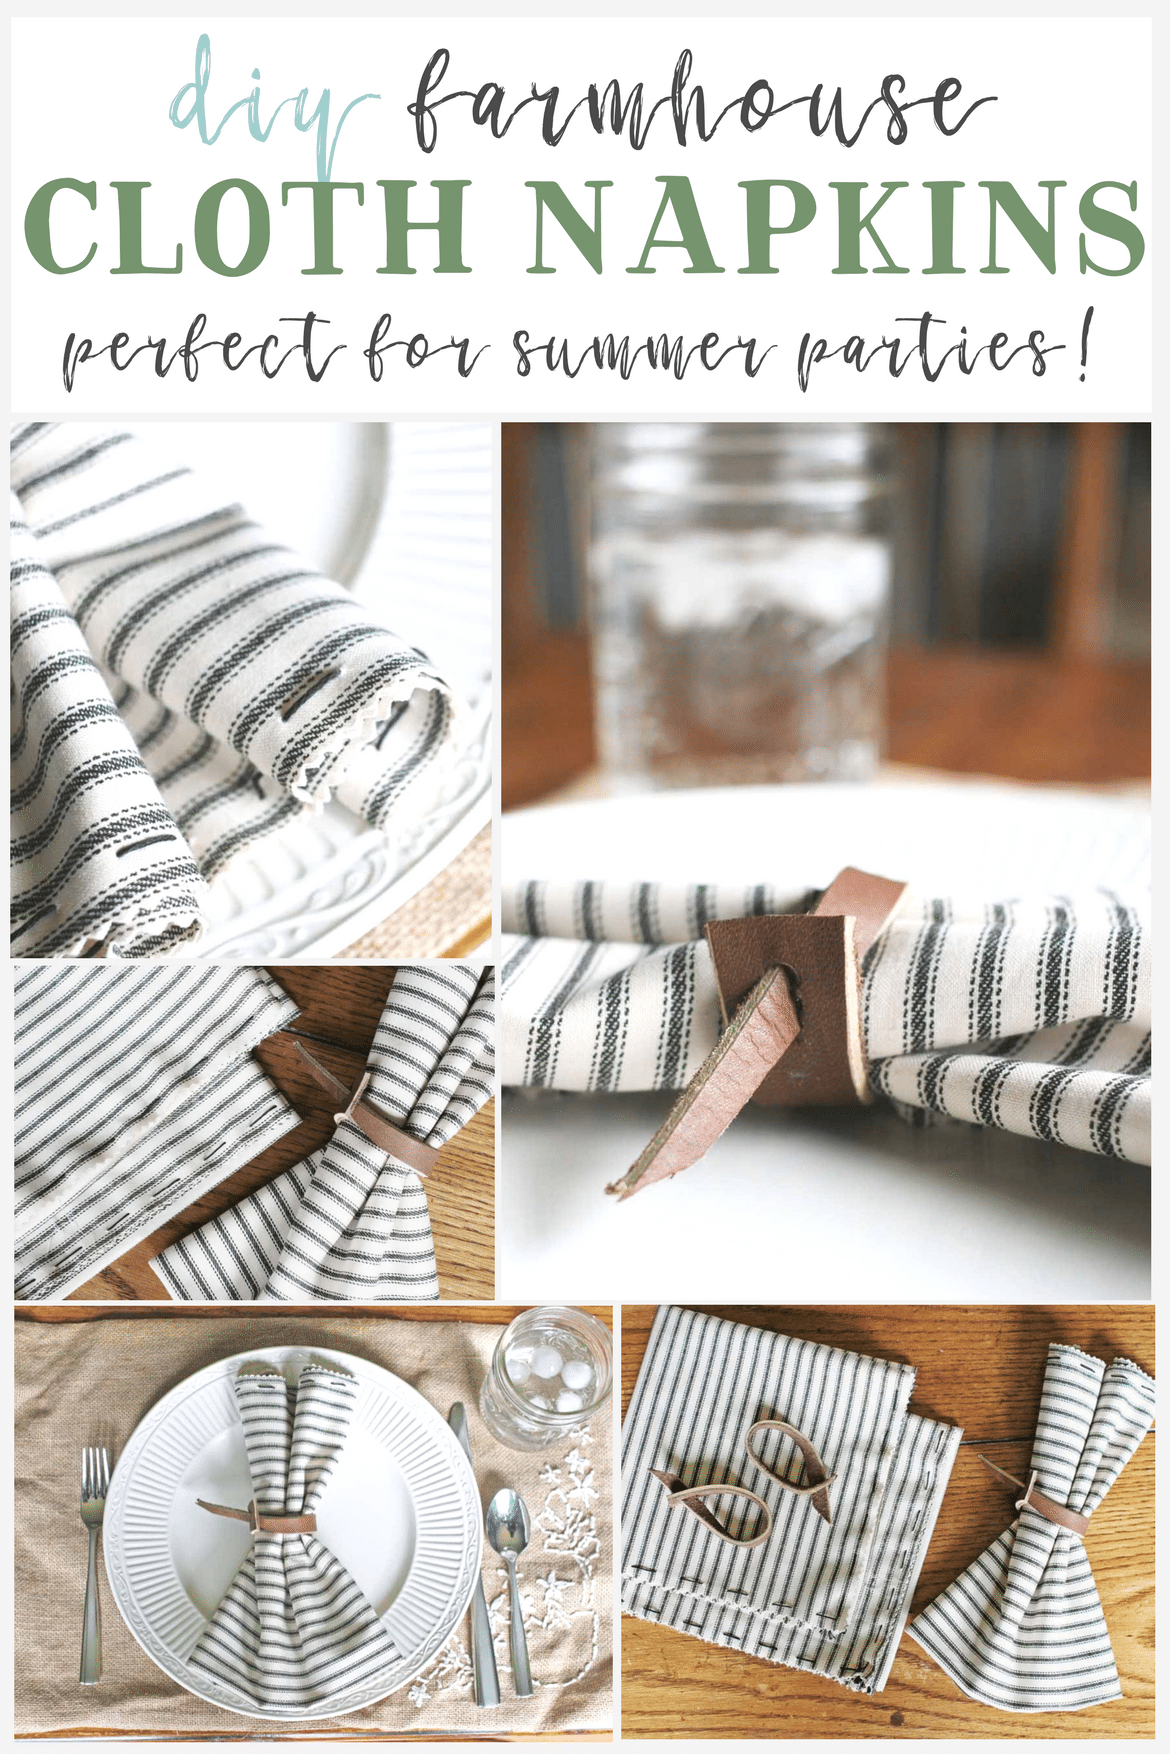 Set a farmhouse style table with DIY cloth napkins. Napkins made with ticking fabric are a simple and charming table linen.